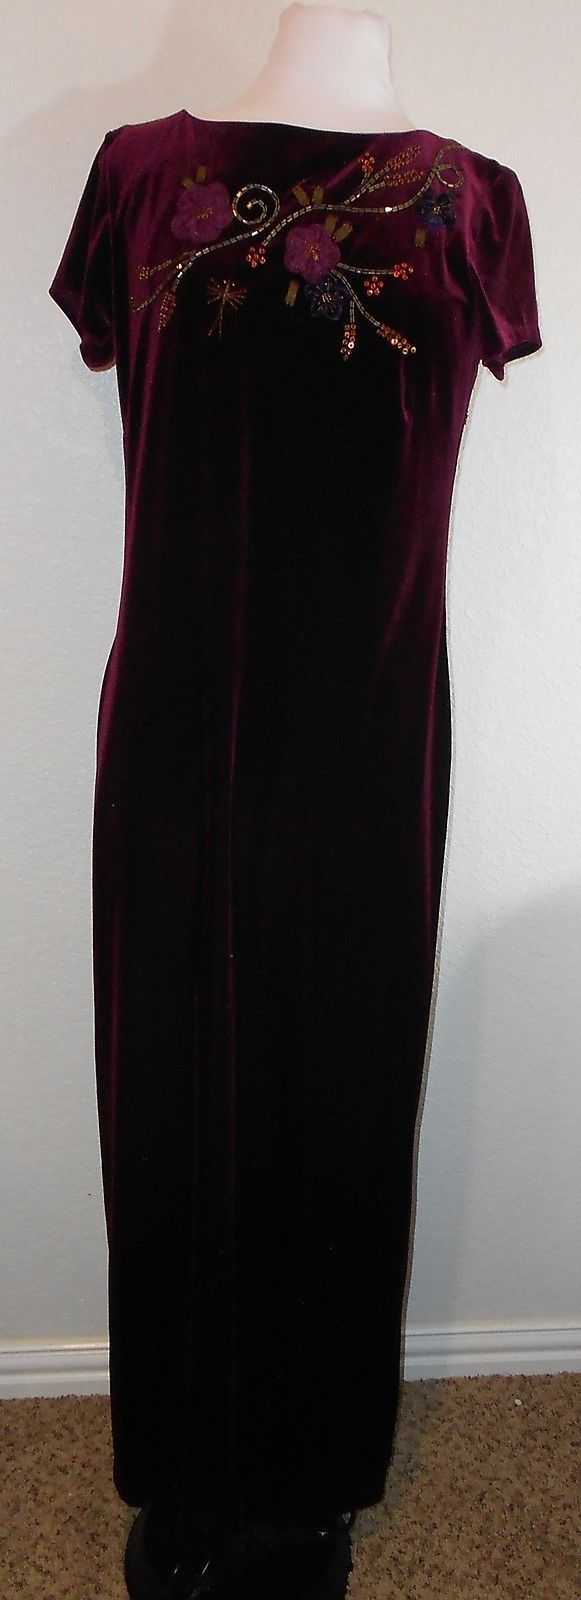 8eff3fcb9fc Carole Little Burgundy Velour Dress Beading 3D Floral Maxi Size 8 Key Hole  Back -  12.86